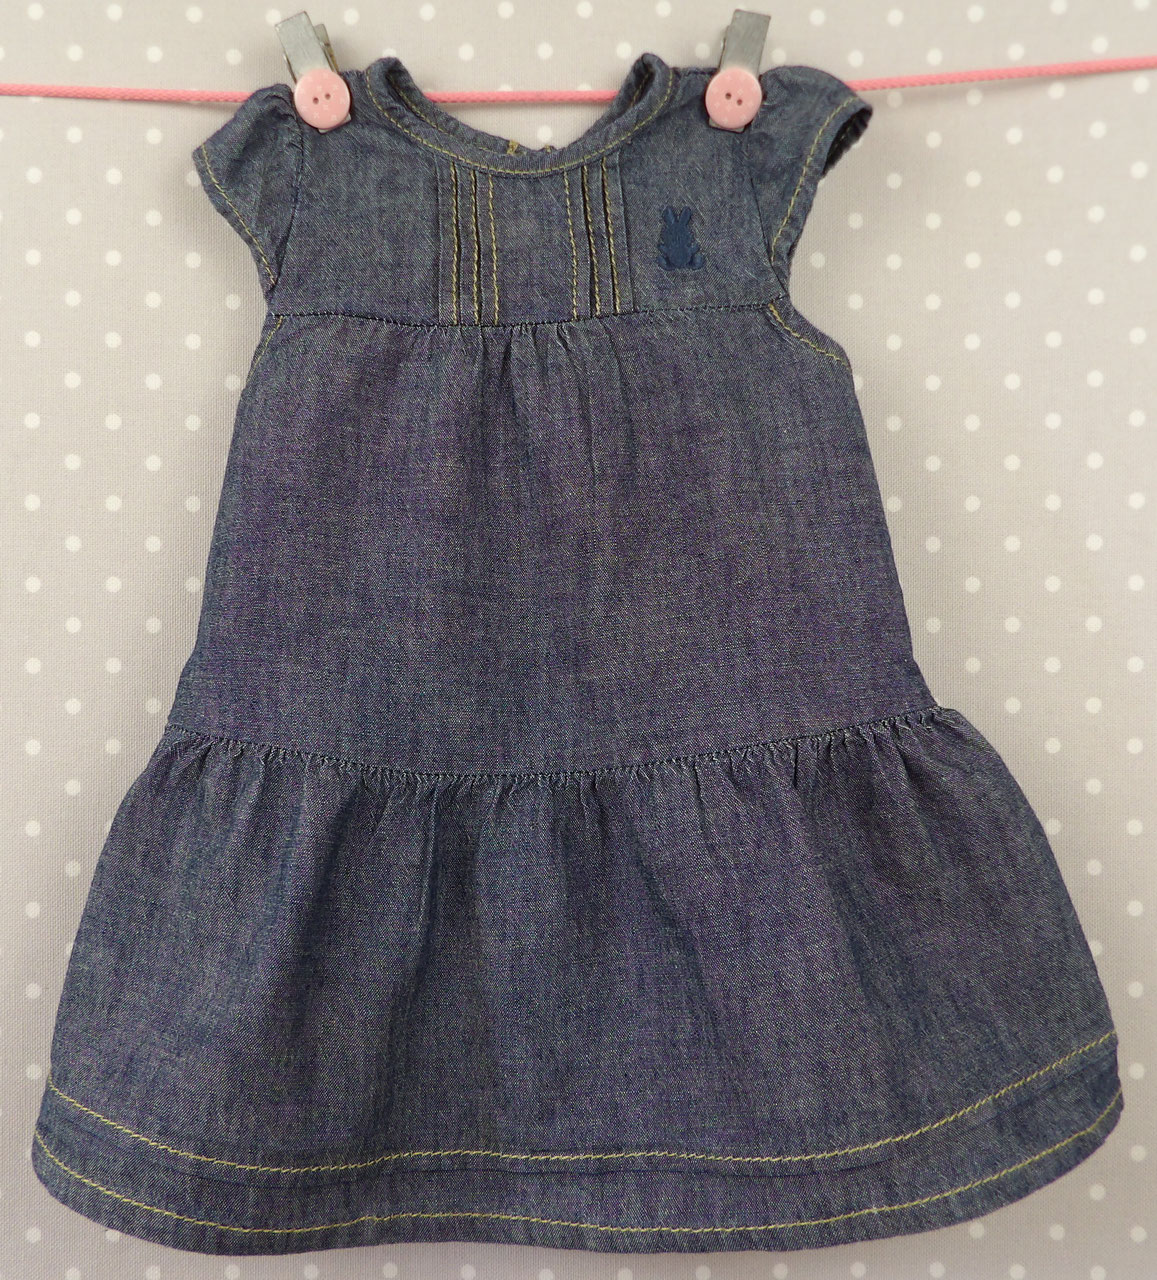 471bfd19f7d14 Benetton Baby - 1 mois